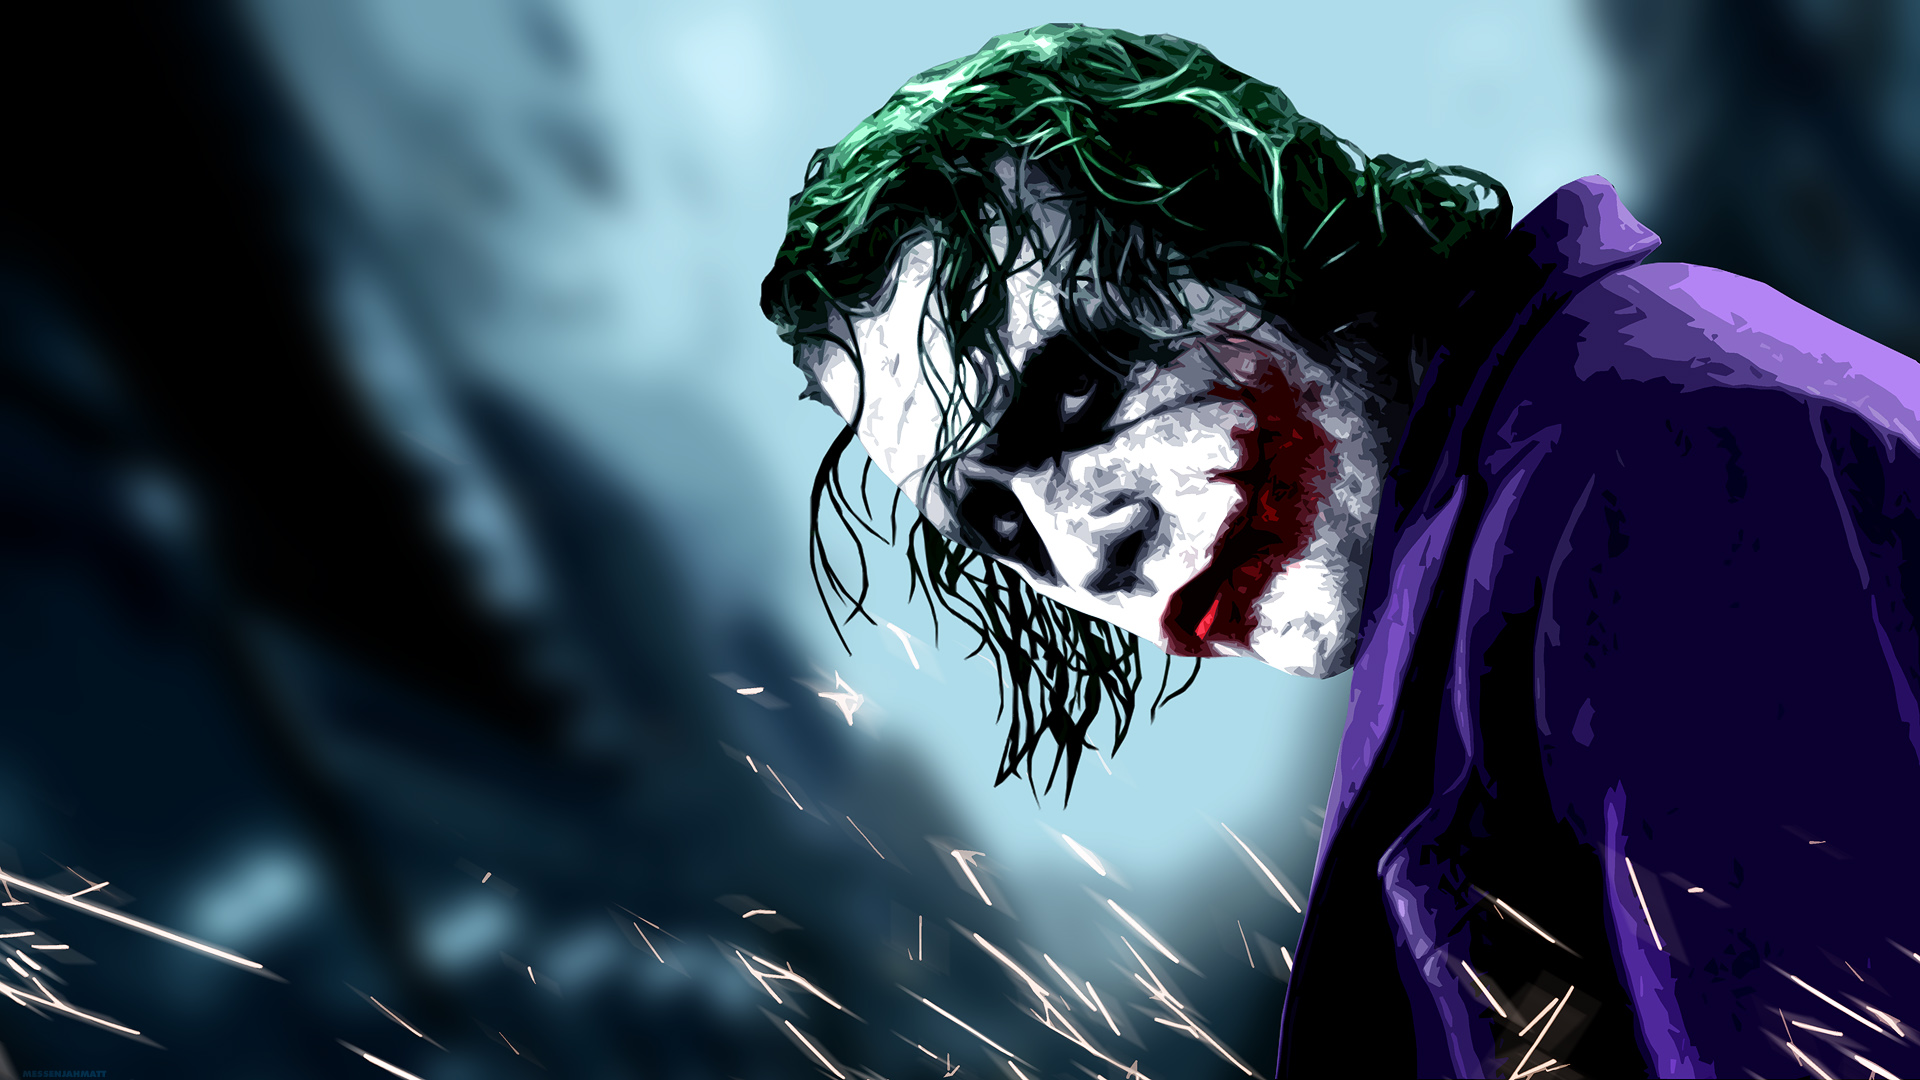 Joker HD Wallpaper Joker Pictures Cool Wallpapers 1920x1080